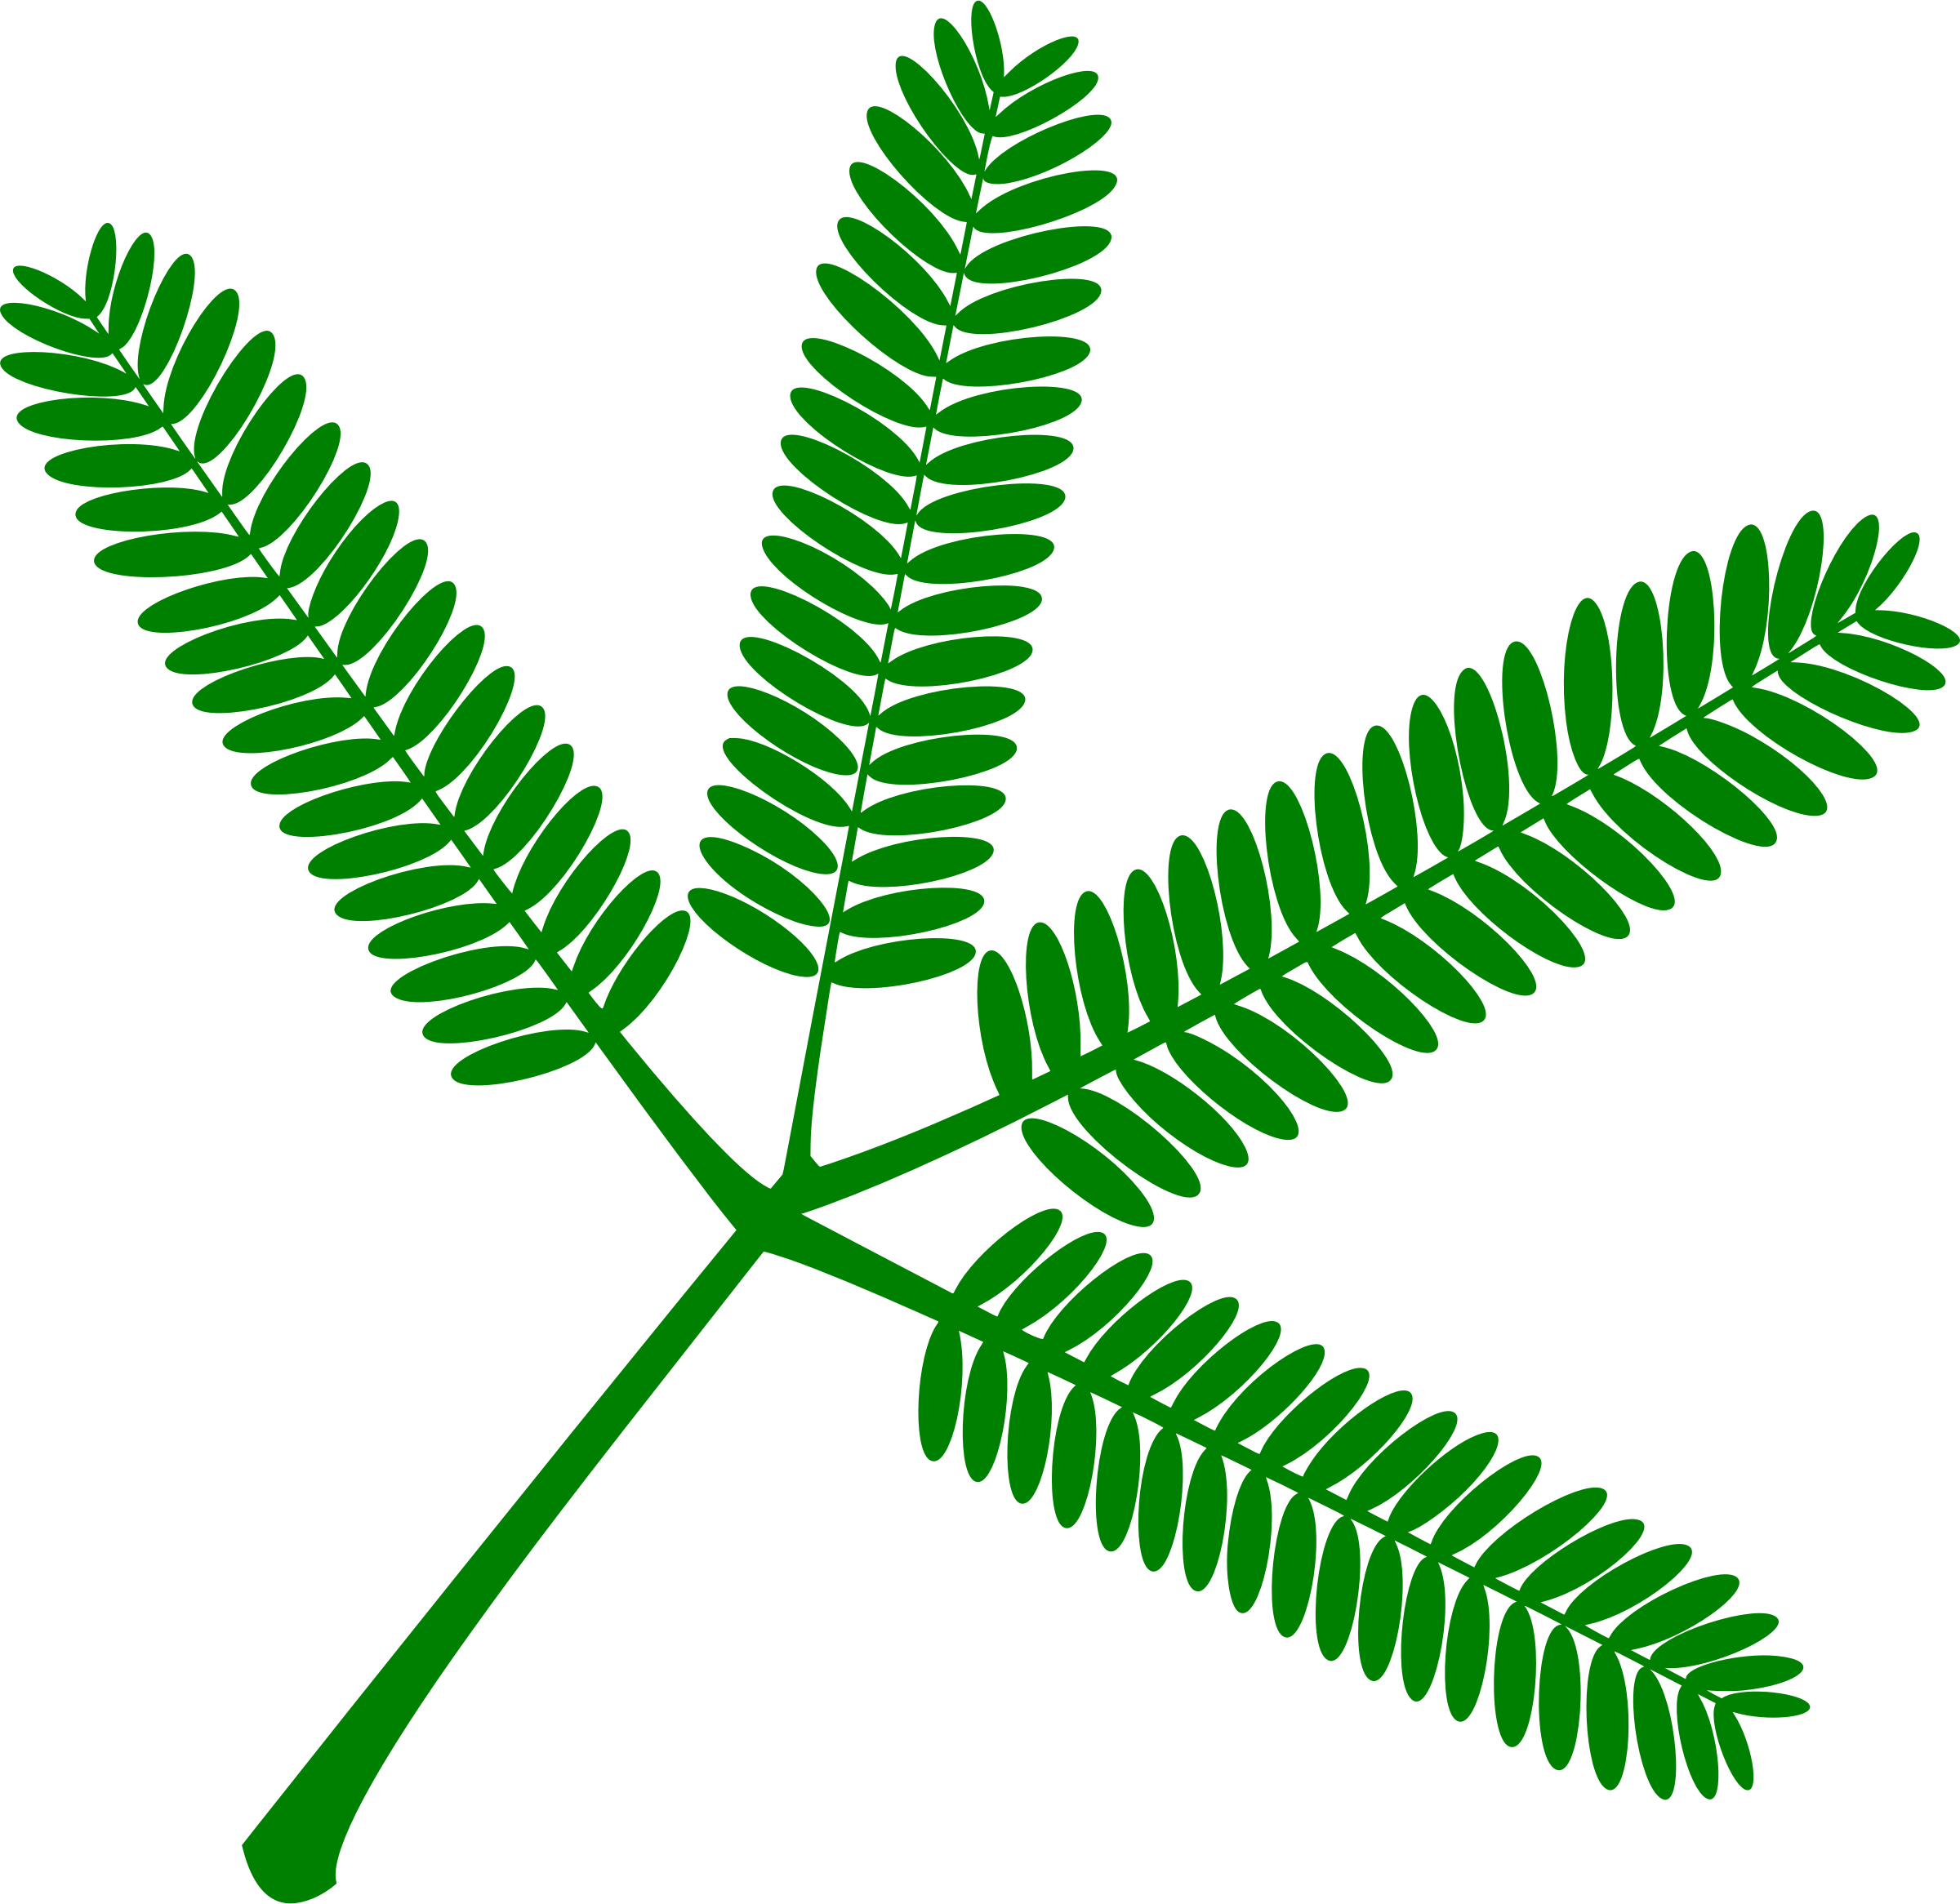 Mimosa vectorized by Firkin